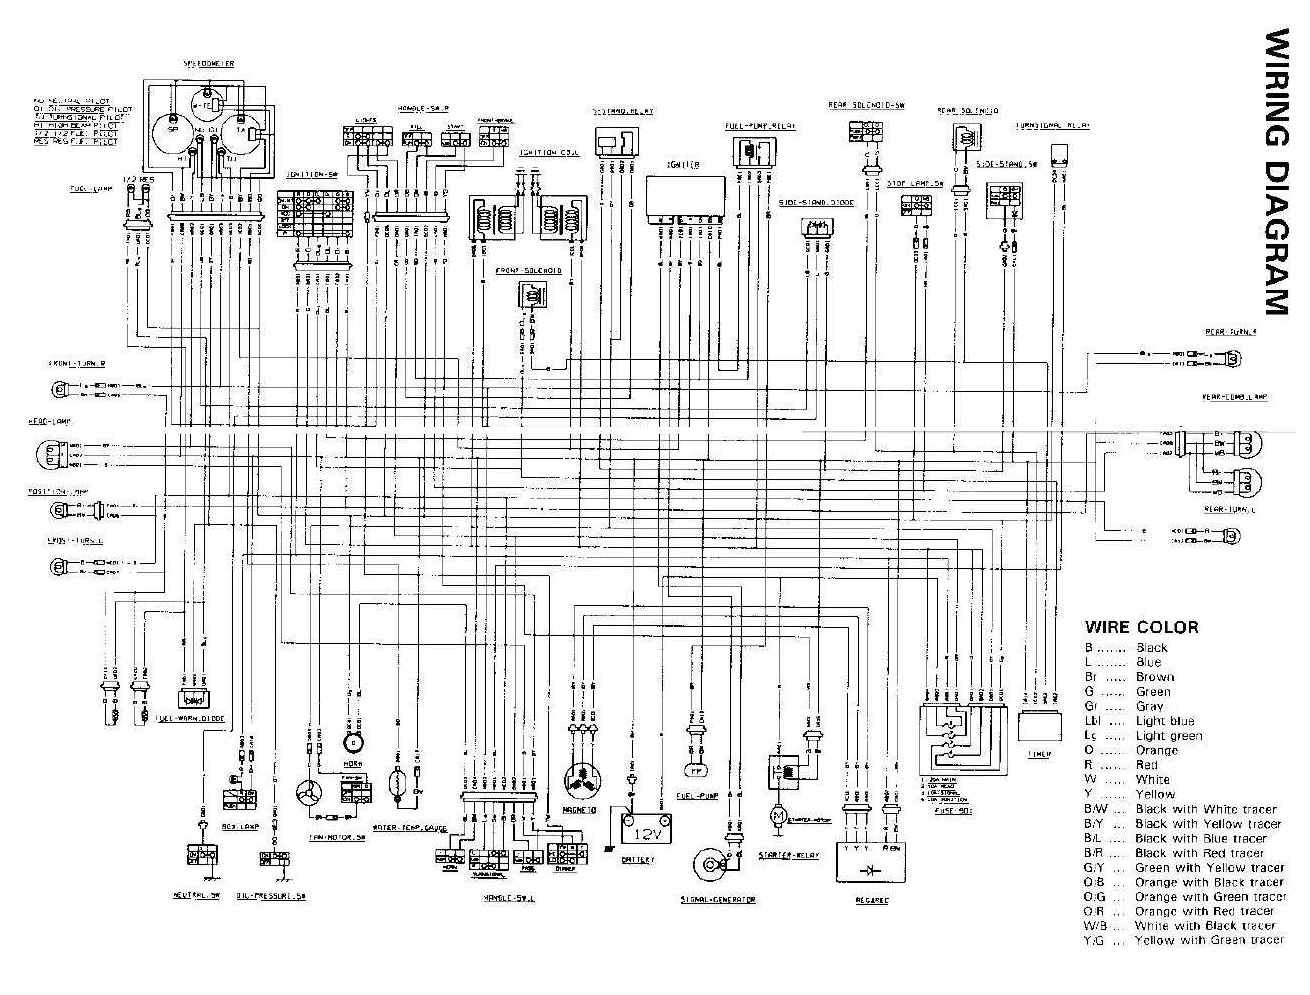 suzuki wiring diagram suzuki image wiring diagram suzuki electrical wiring diagrams suzuki wiring diagrams cars on suzuki wiring diagram